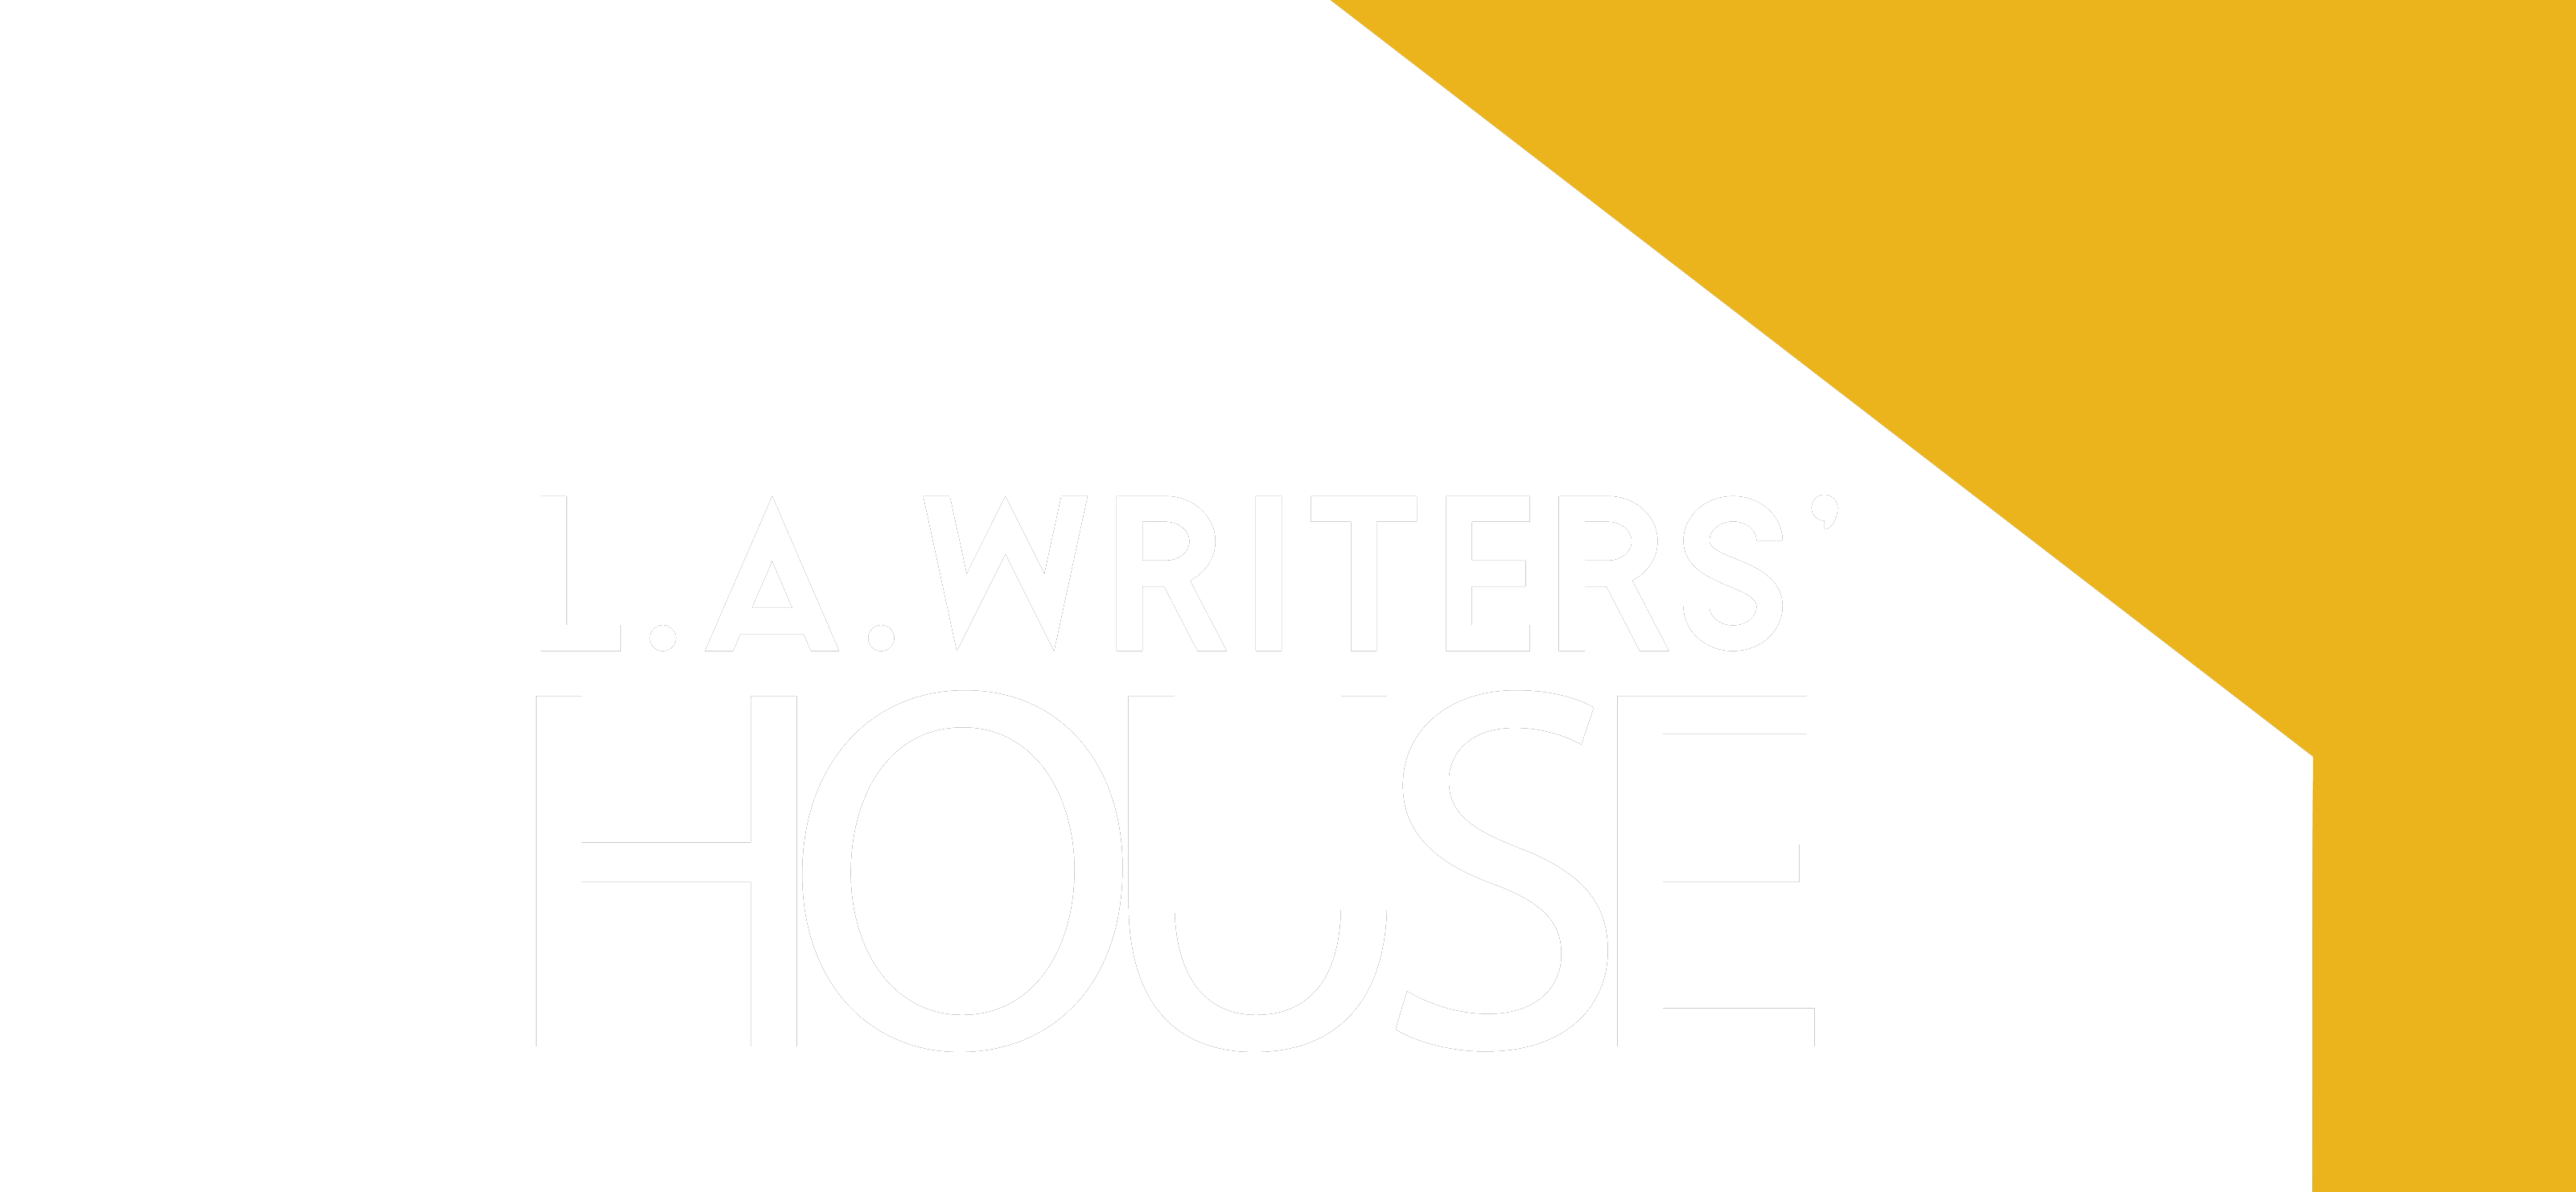 L.A. Writers' House